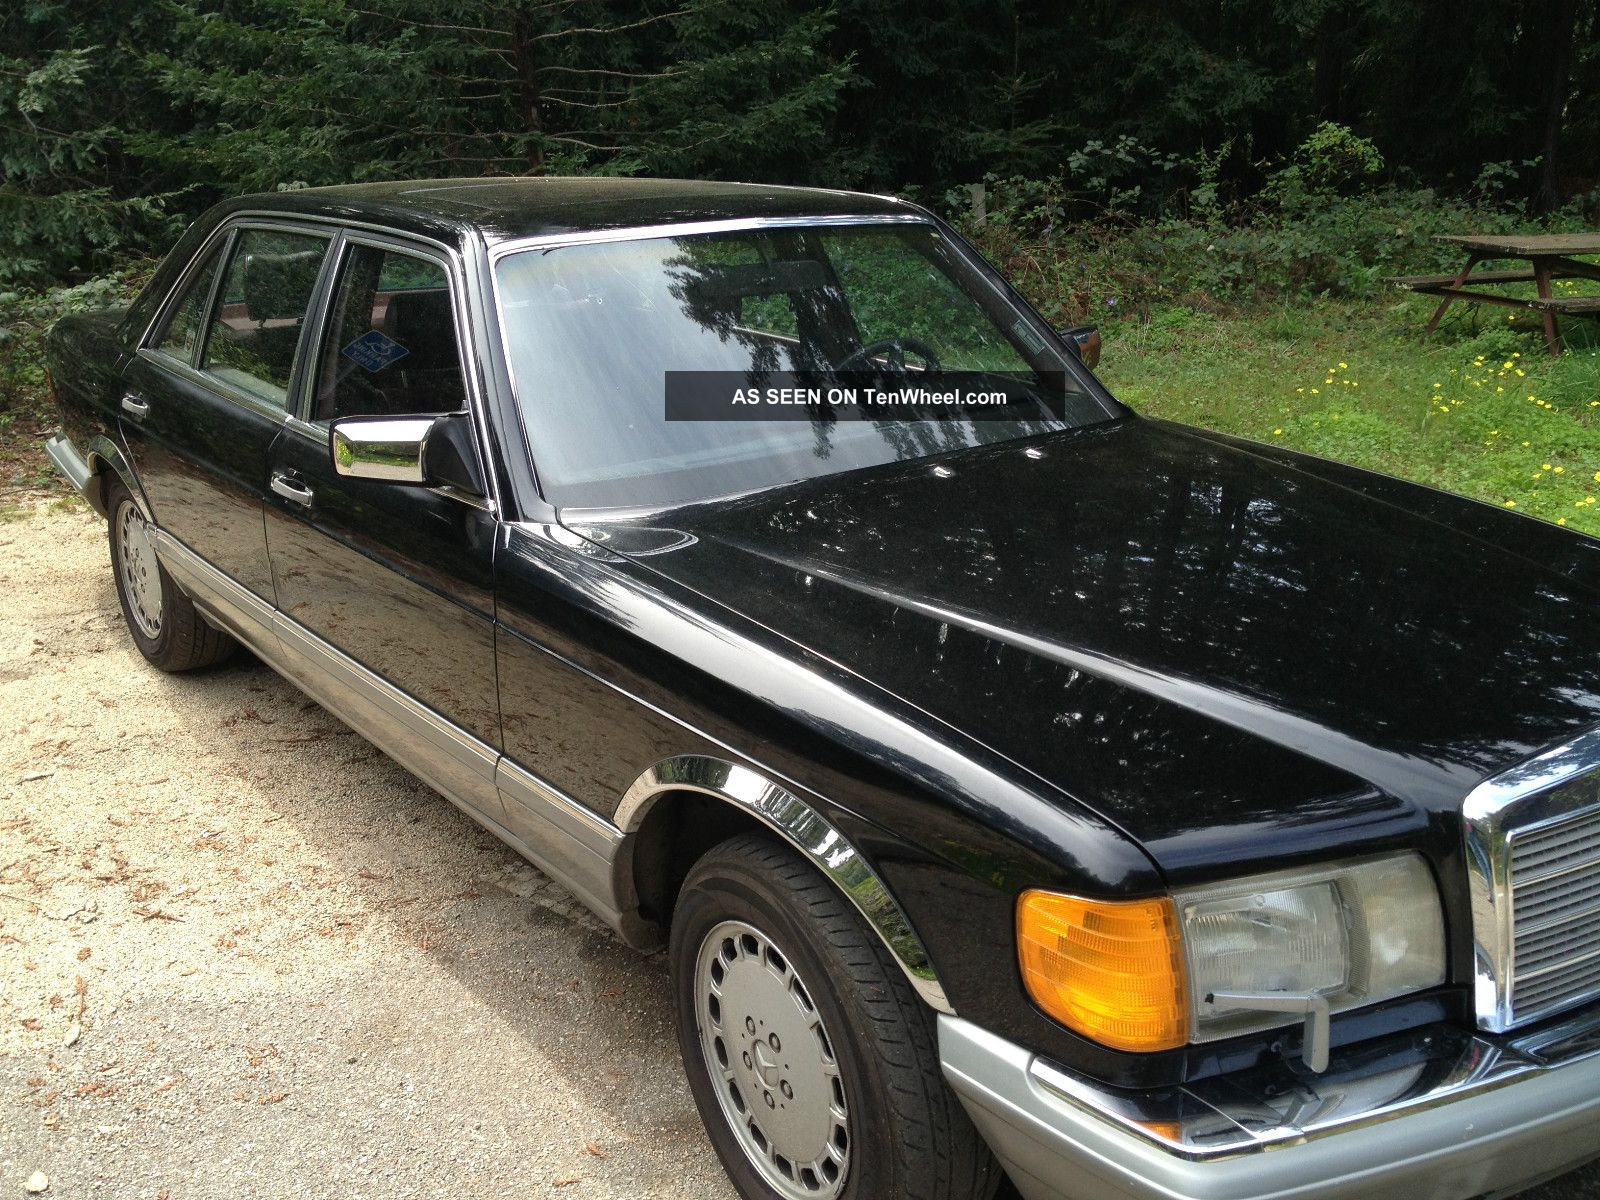 1987 Mercedes - Benz 300sdl Luxury Sedan Black Diesel 195k 300-Series photo